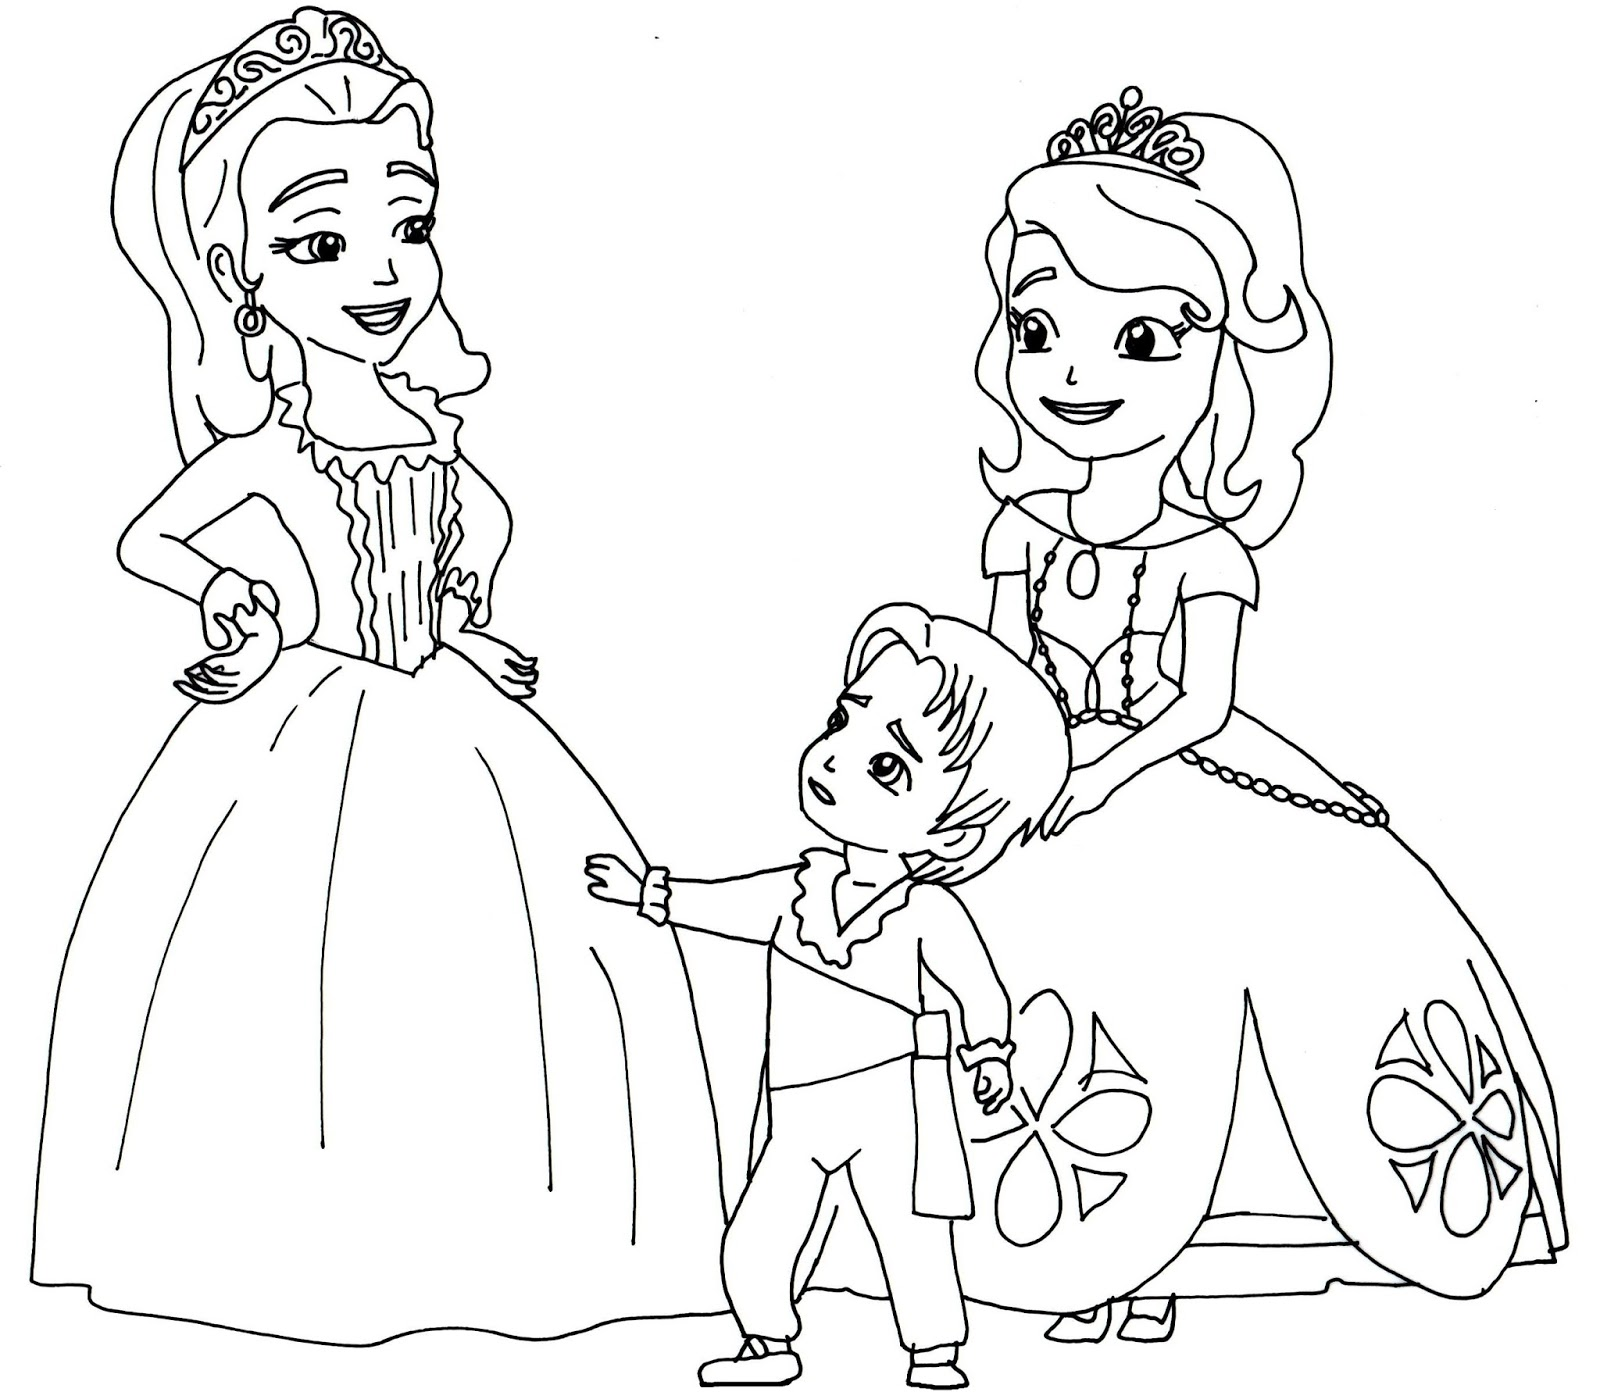 Free Printable Sofia The First Coloring Page With Amber And Baby James In  The Two Princesses And A Baby